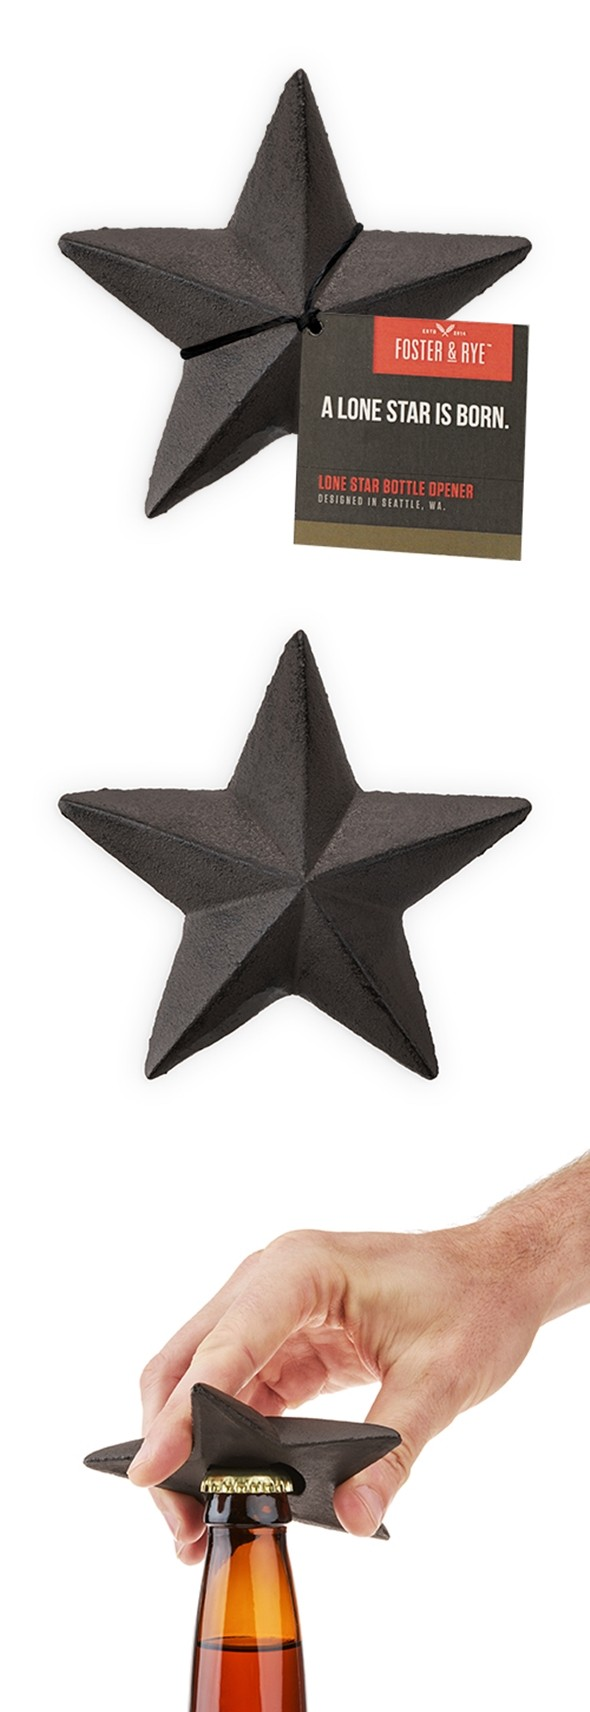 Cast-Iron Lone Star Bottle Opener by Foster & Rye